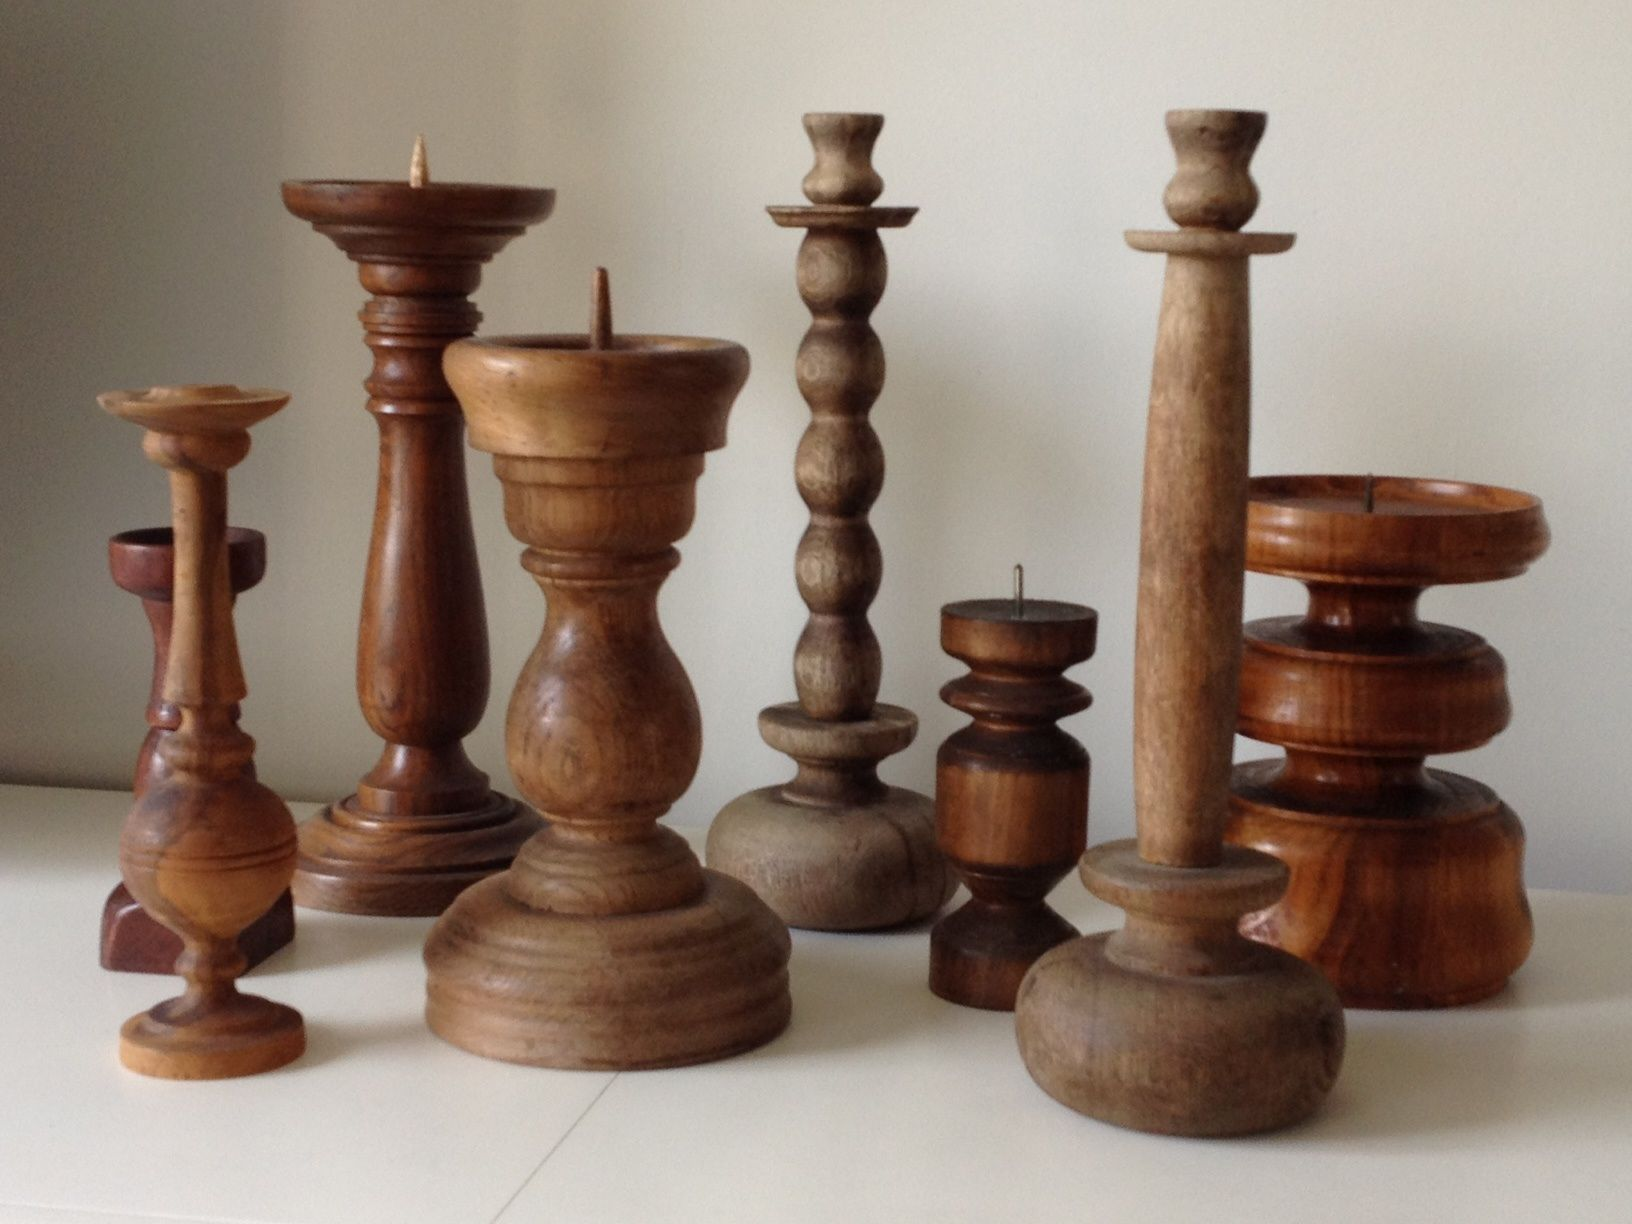 Cool Candle Holders Wooden Candlesticks Look Fab But Have To Watch As Can